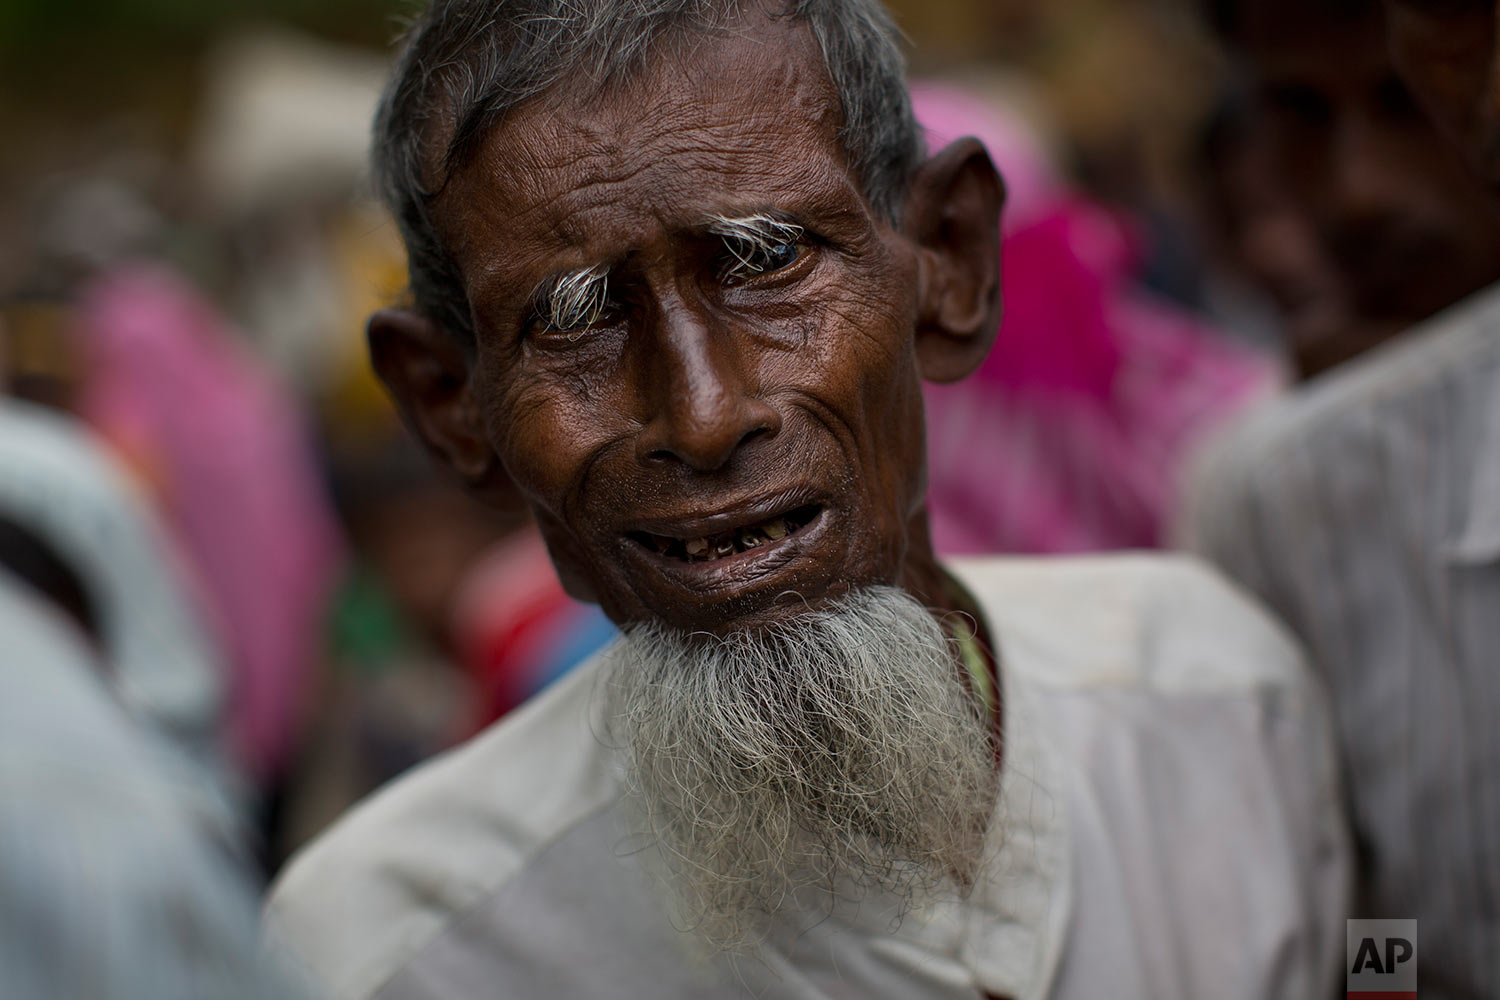 An elderly Rohingya Muslim, who recently crossed over from Myanmar into Bangladesh, arrives at a food distribution center in Kutupalong, Bangladesh, Saturday, Sept. 9, 2017. (AP Photo/Bernat Armangue)